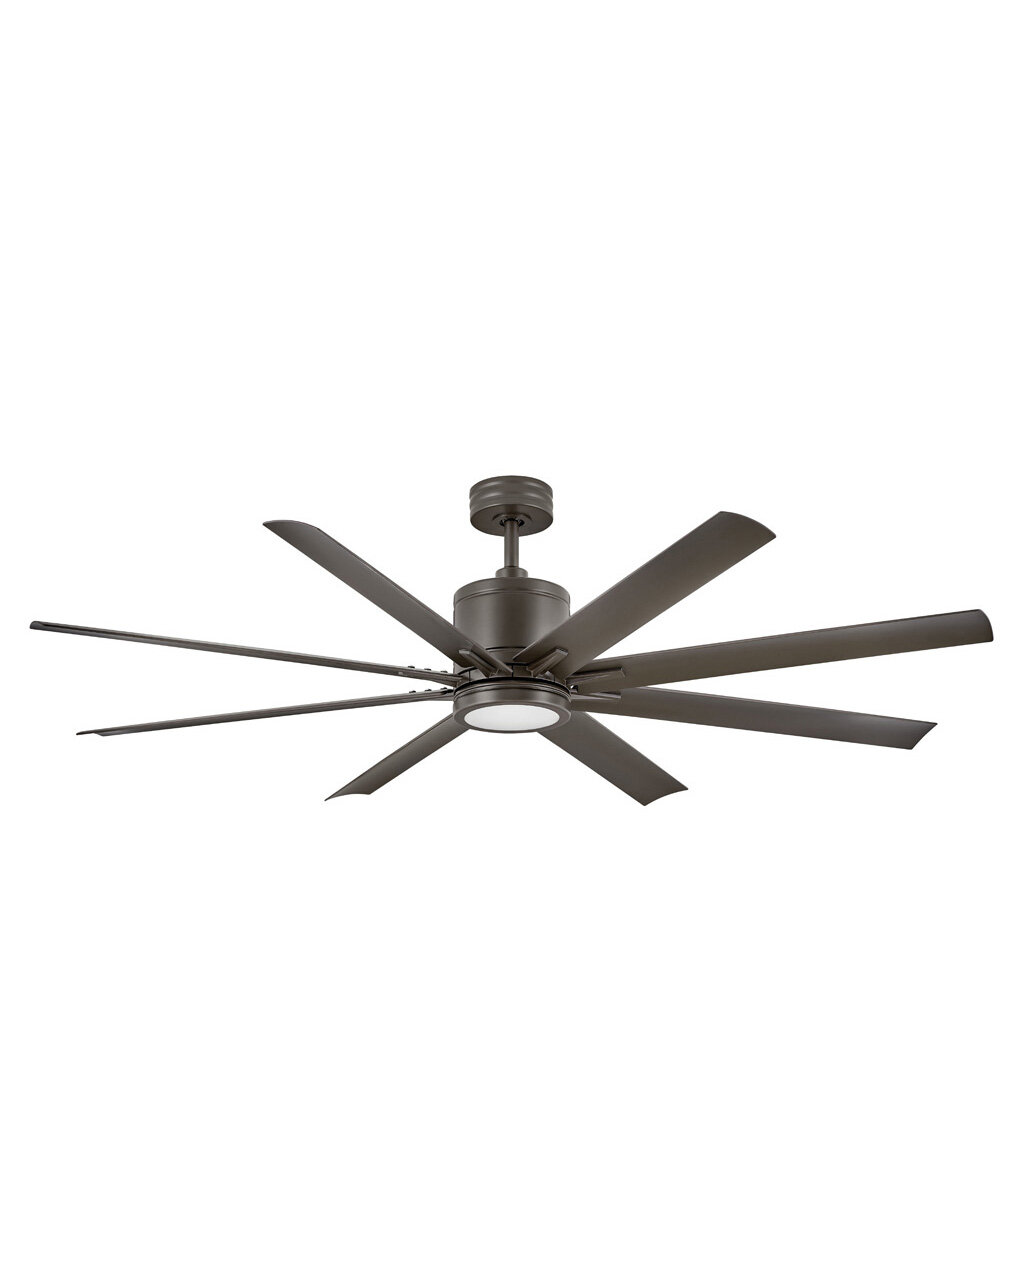 Red Barrel Studio 66 Friedler 8 Blade Outdoor Led Windmill Ceiling Fan With Wall Control And Light Kit Included Reviews Wayfair